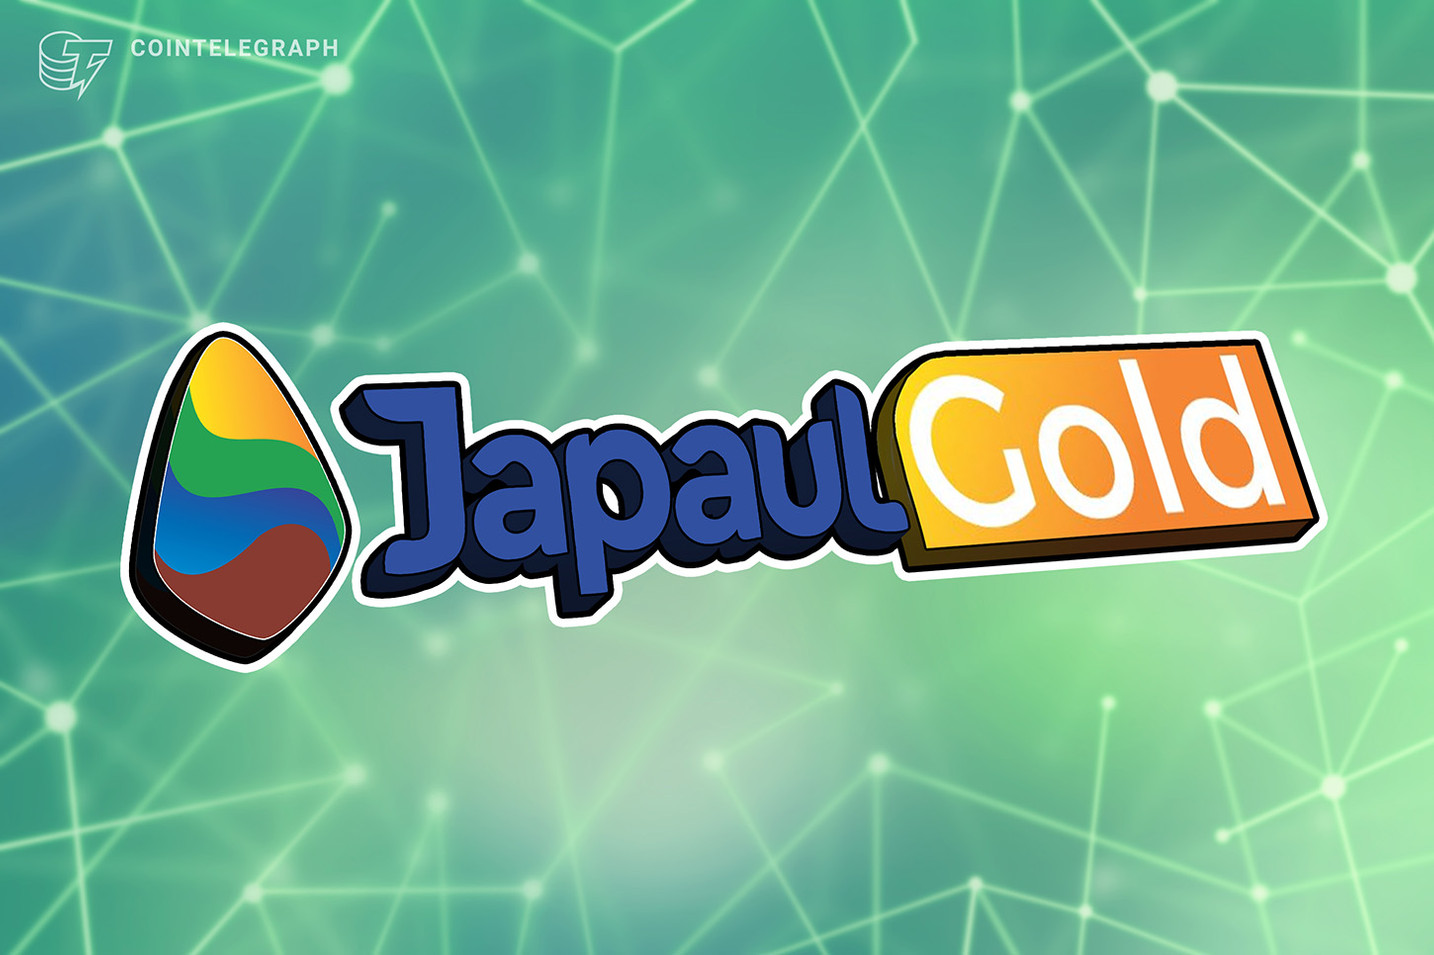 JPGold token: An investment backed by gold security